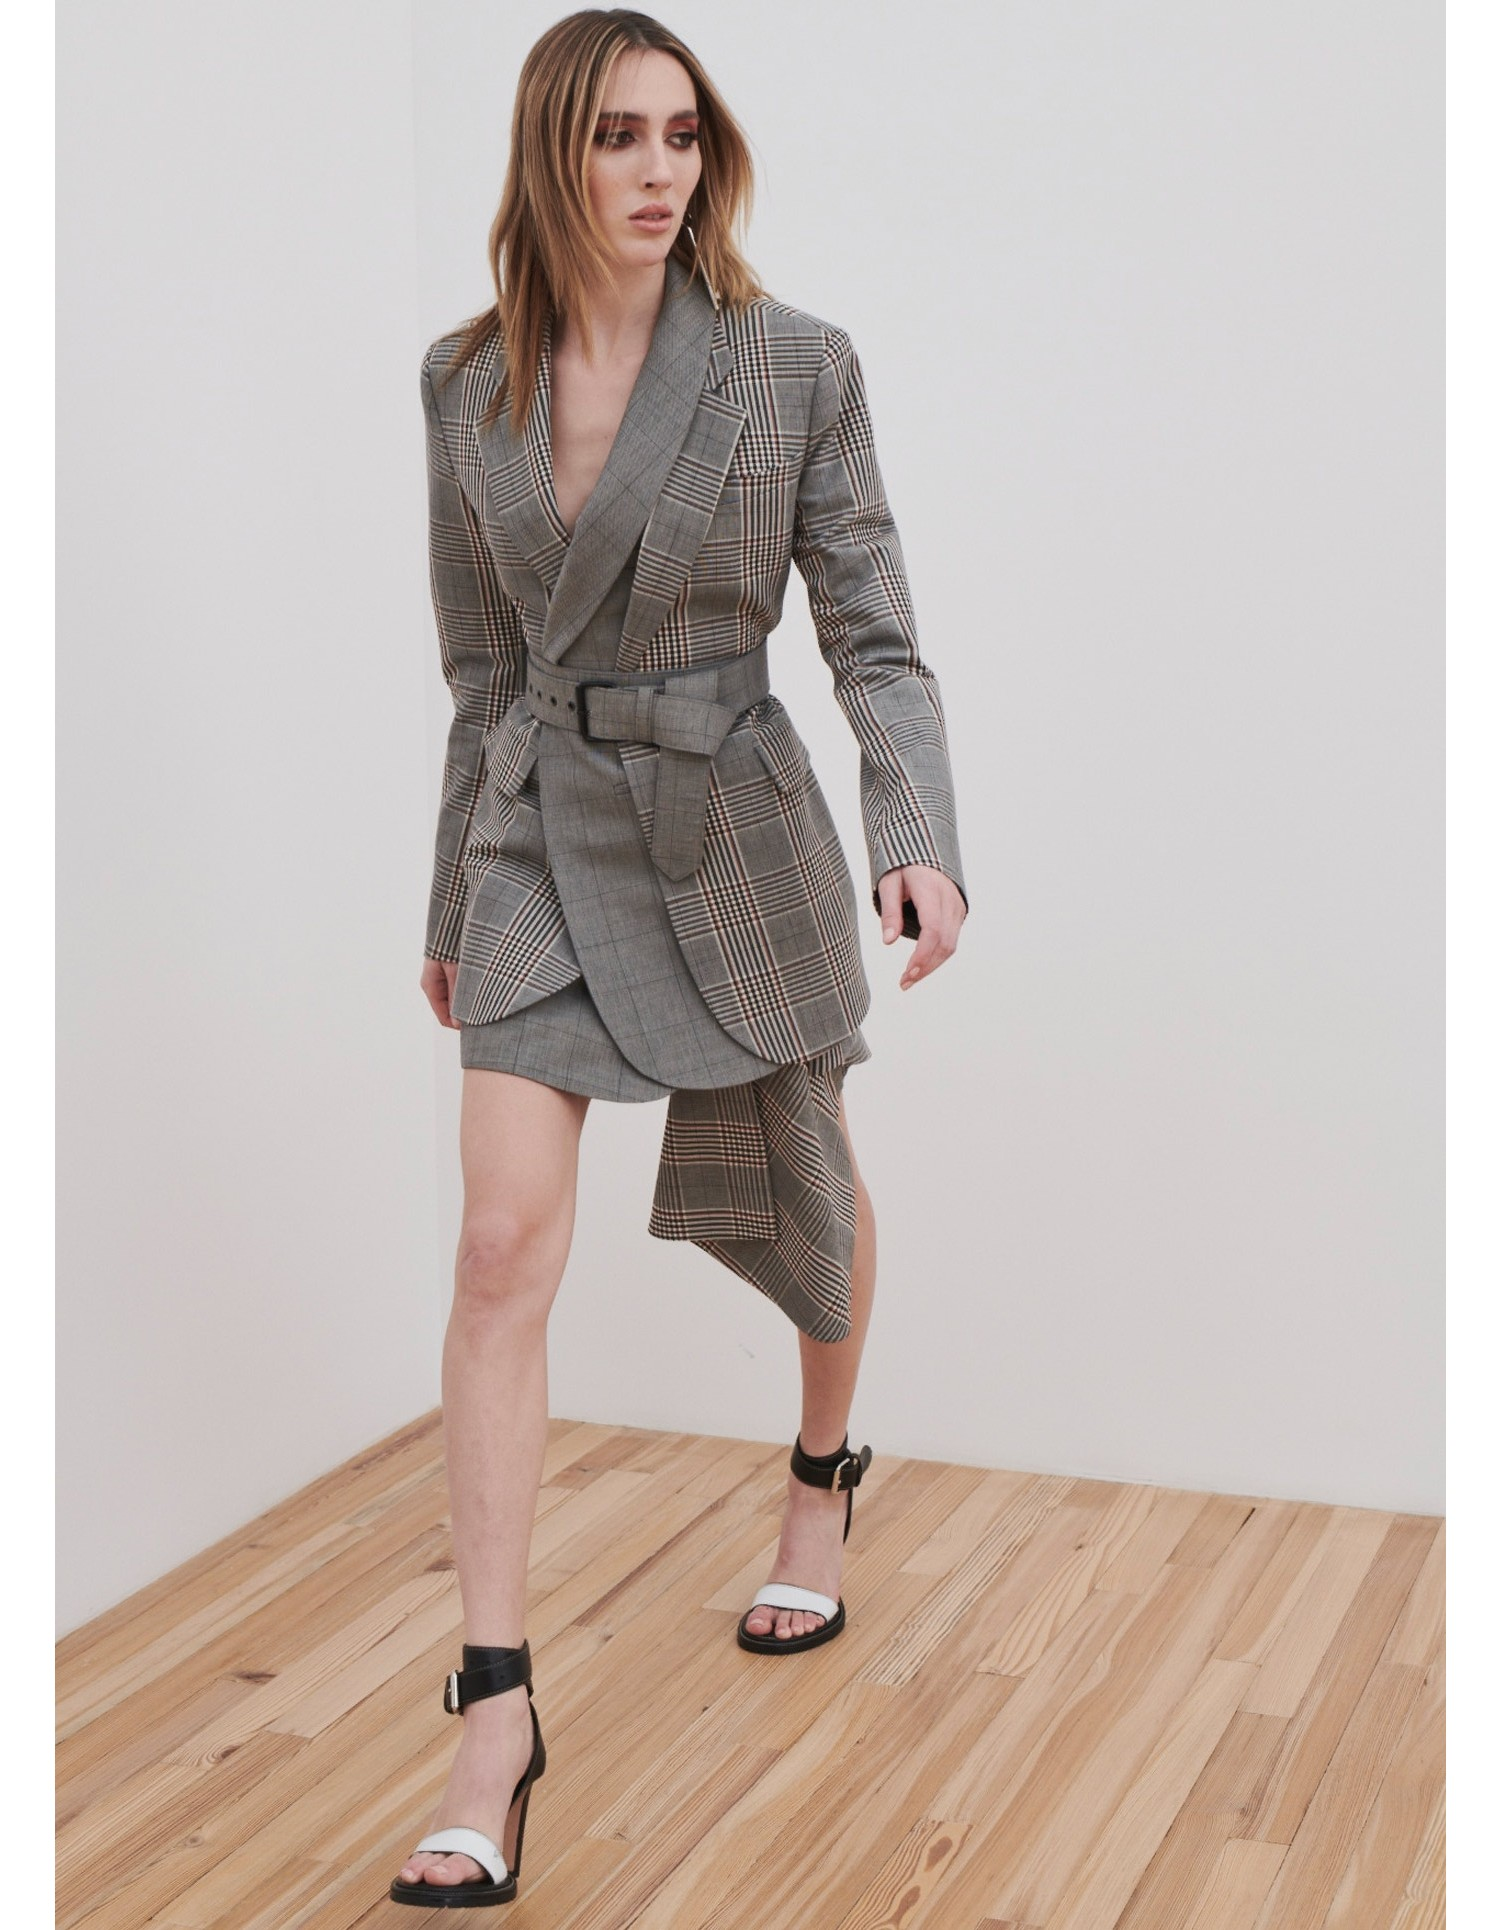 MONSE Plaid Cascade Suiting Mini Skirt on Model Walking